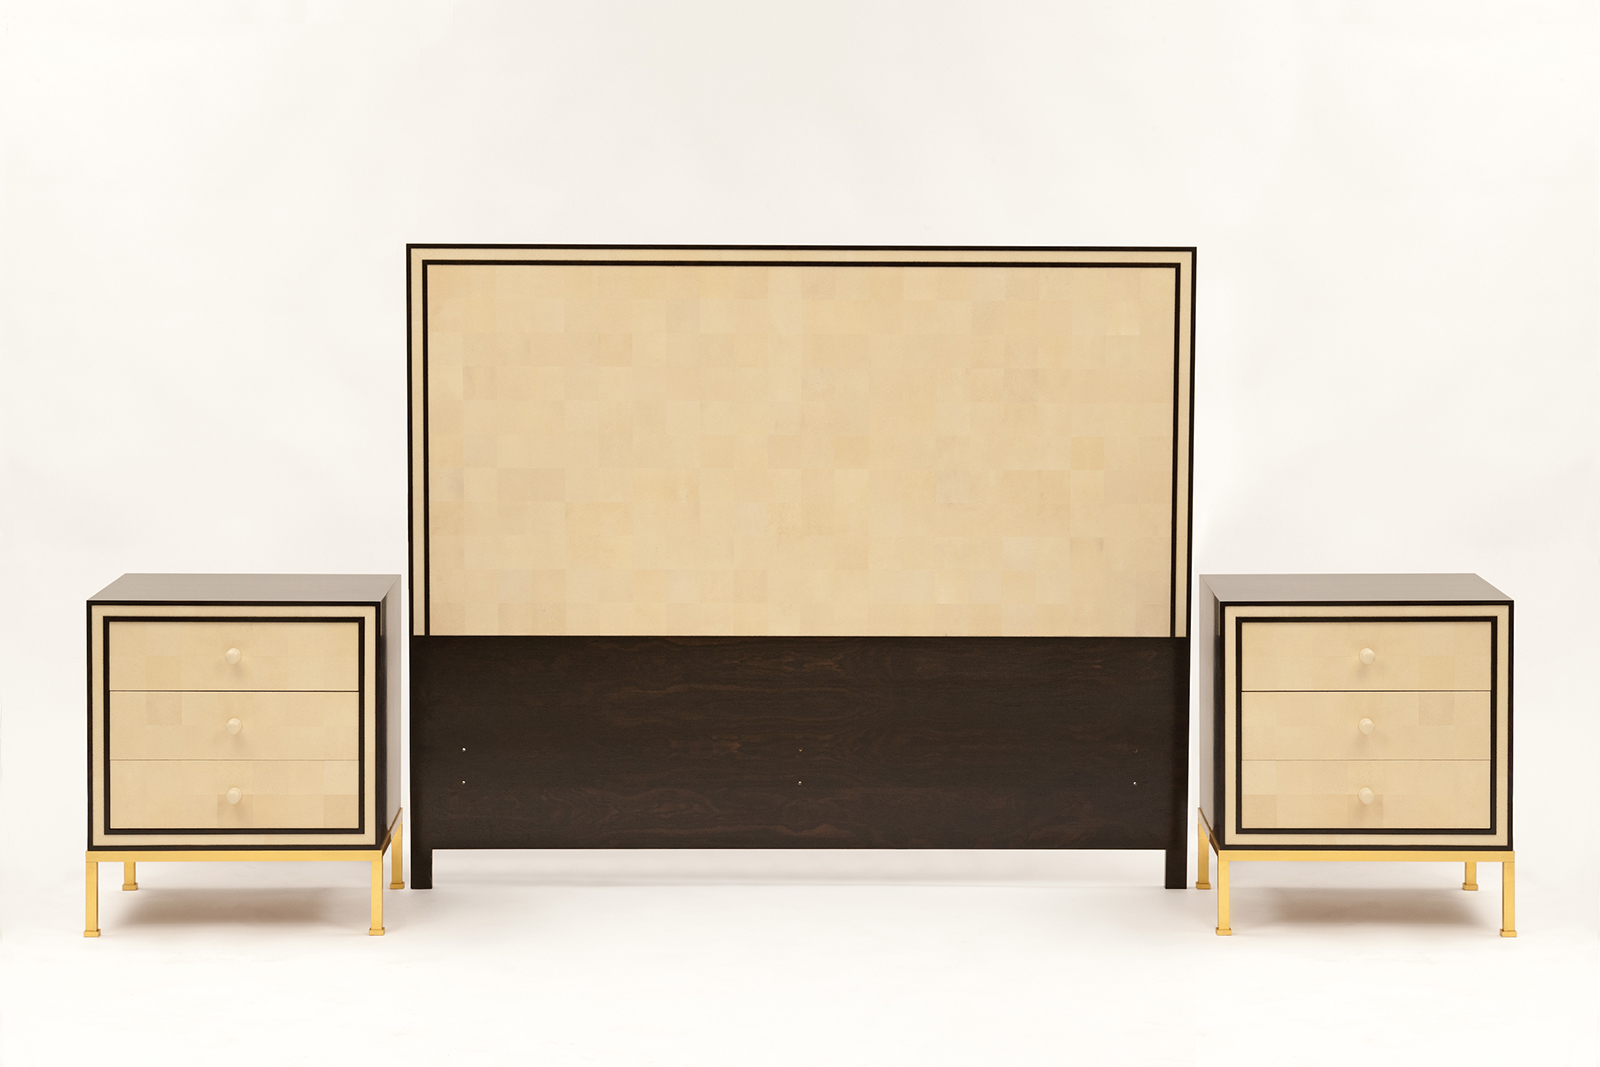 Headboard & Night Stands In Ceylon Ebony, Shagreen Mosaic, Faux Ivory & Gilt Bronze